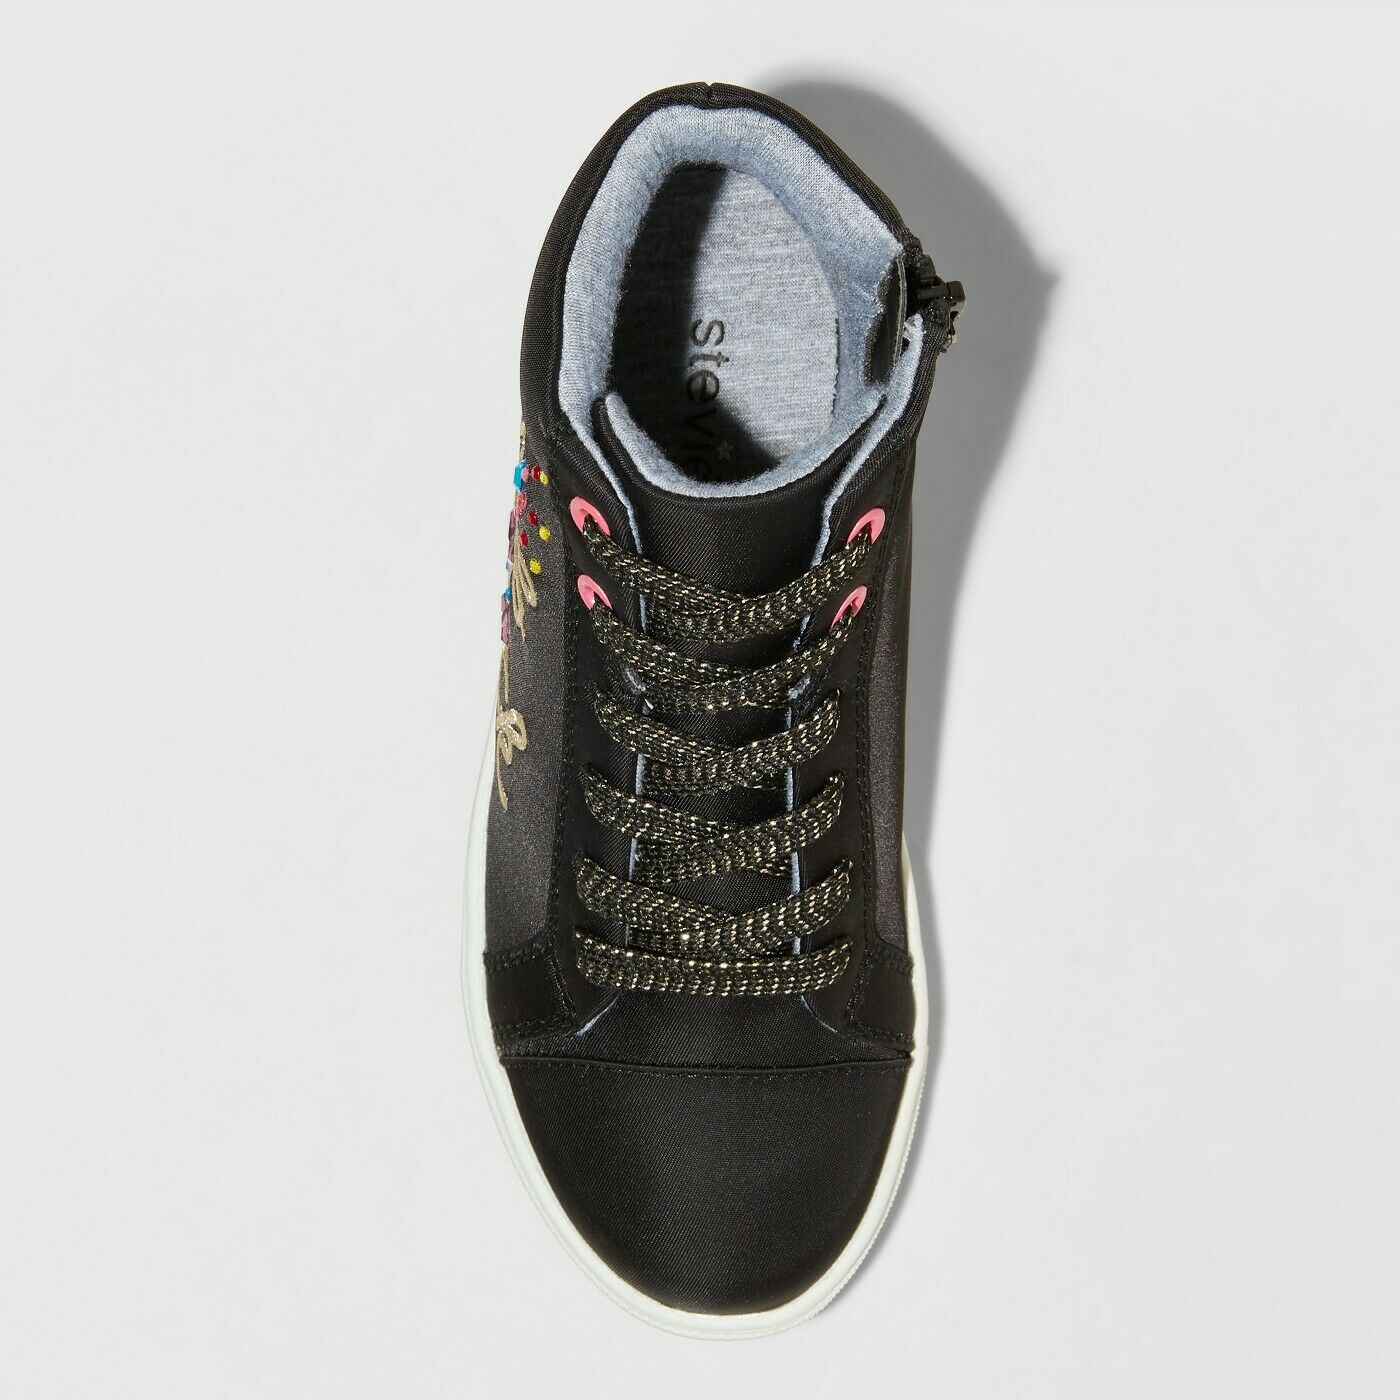 Art Class Stevies Girls/' Camero Rock High Top Sneakers Black Choose Size 3-4 NWT